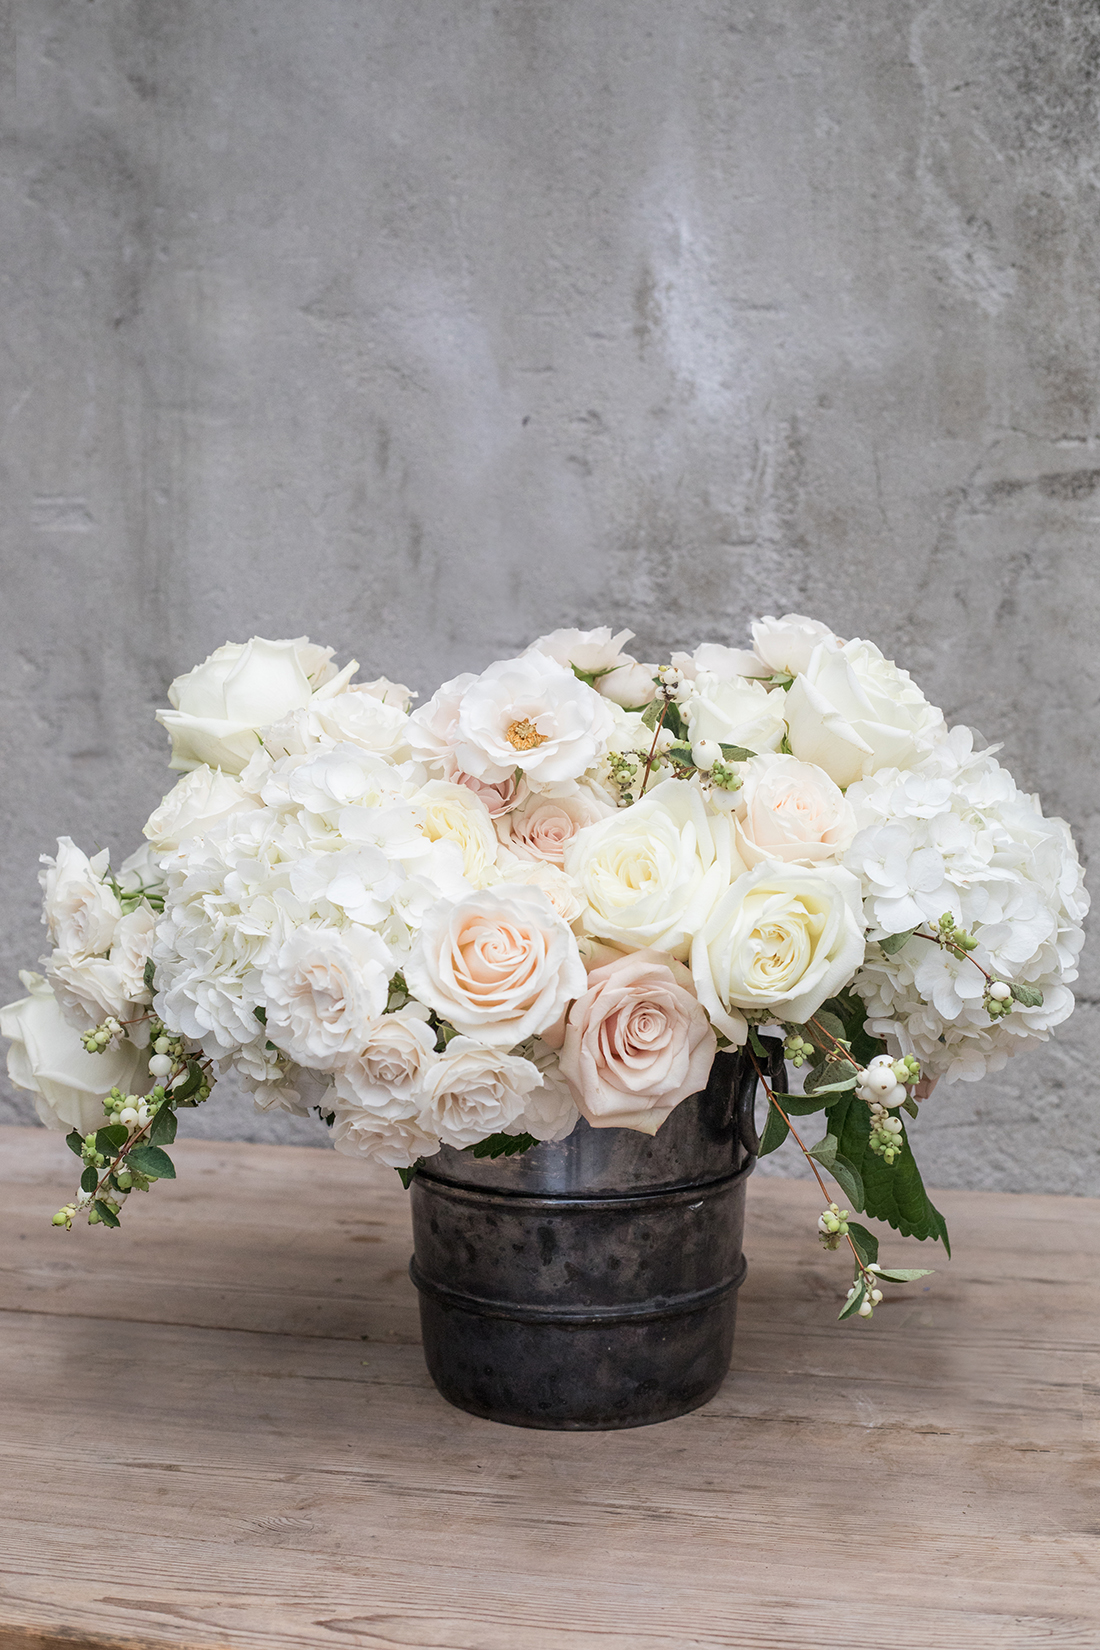 An image of a white rose and hydrangea wedding arrangement